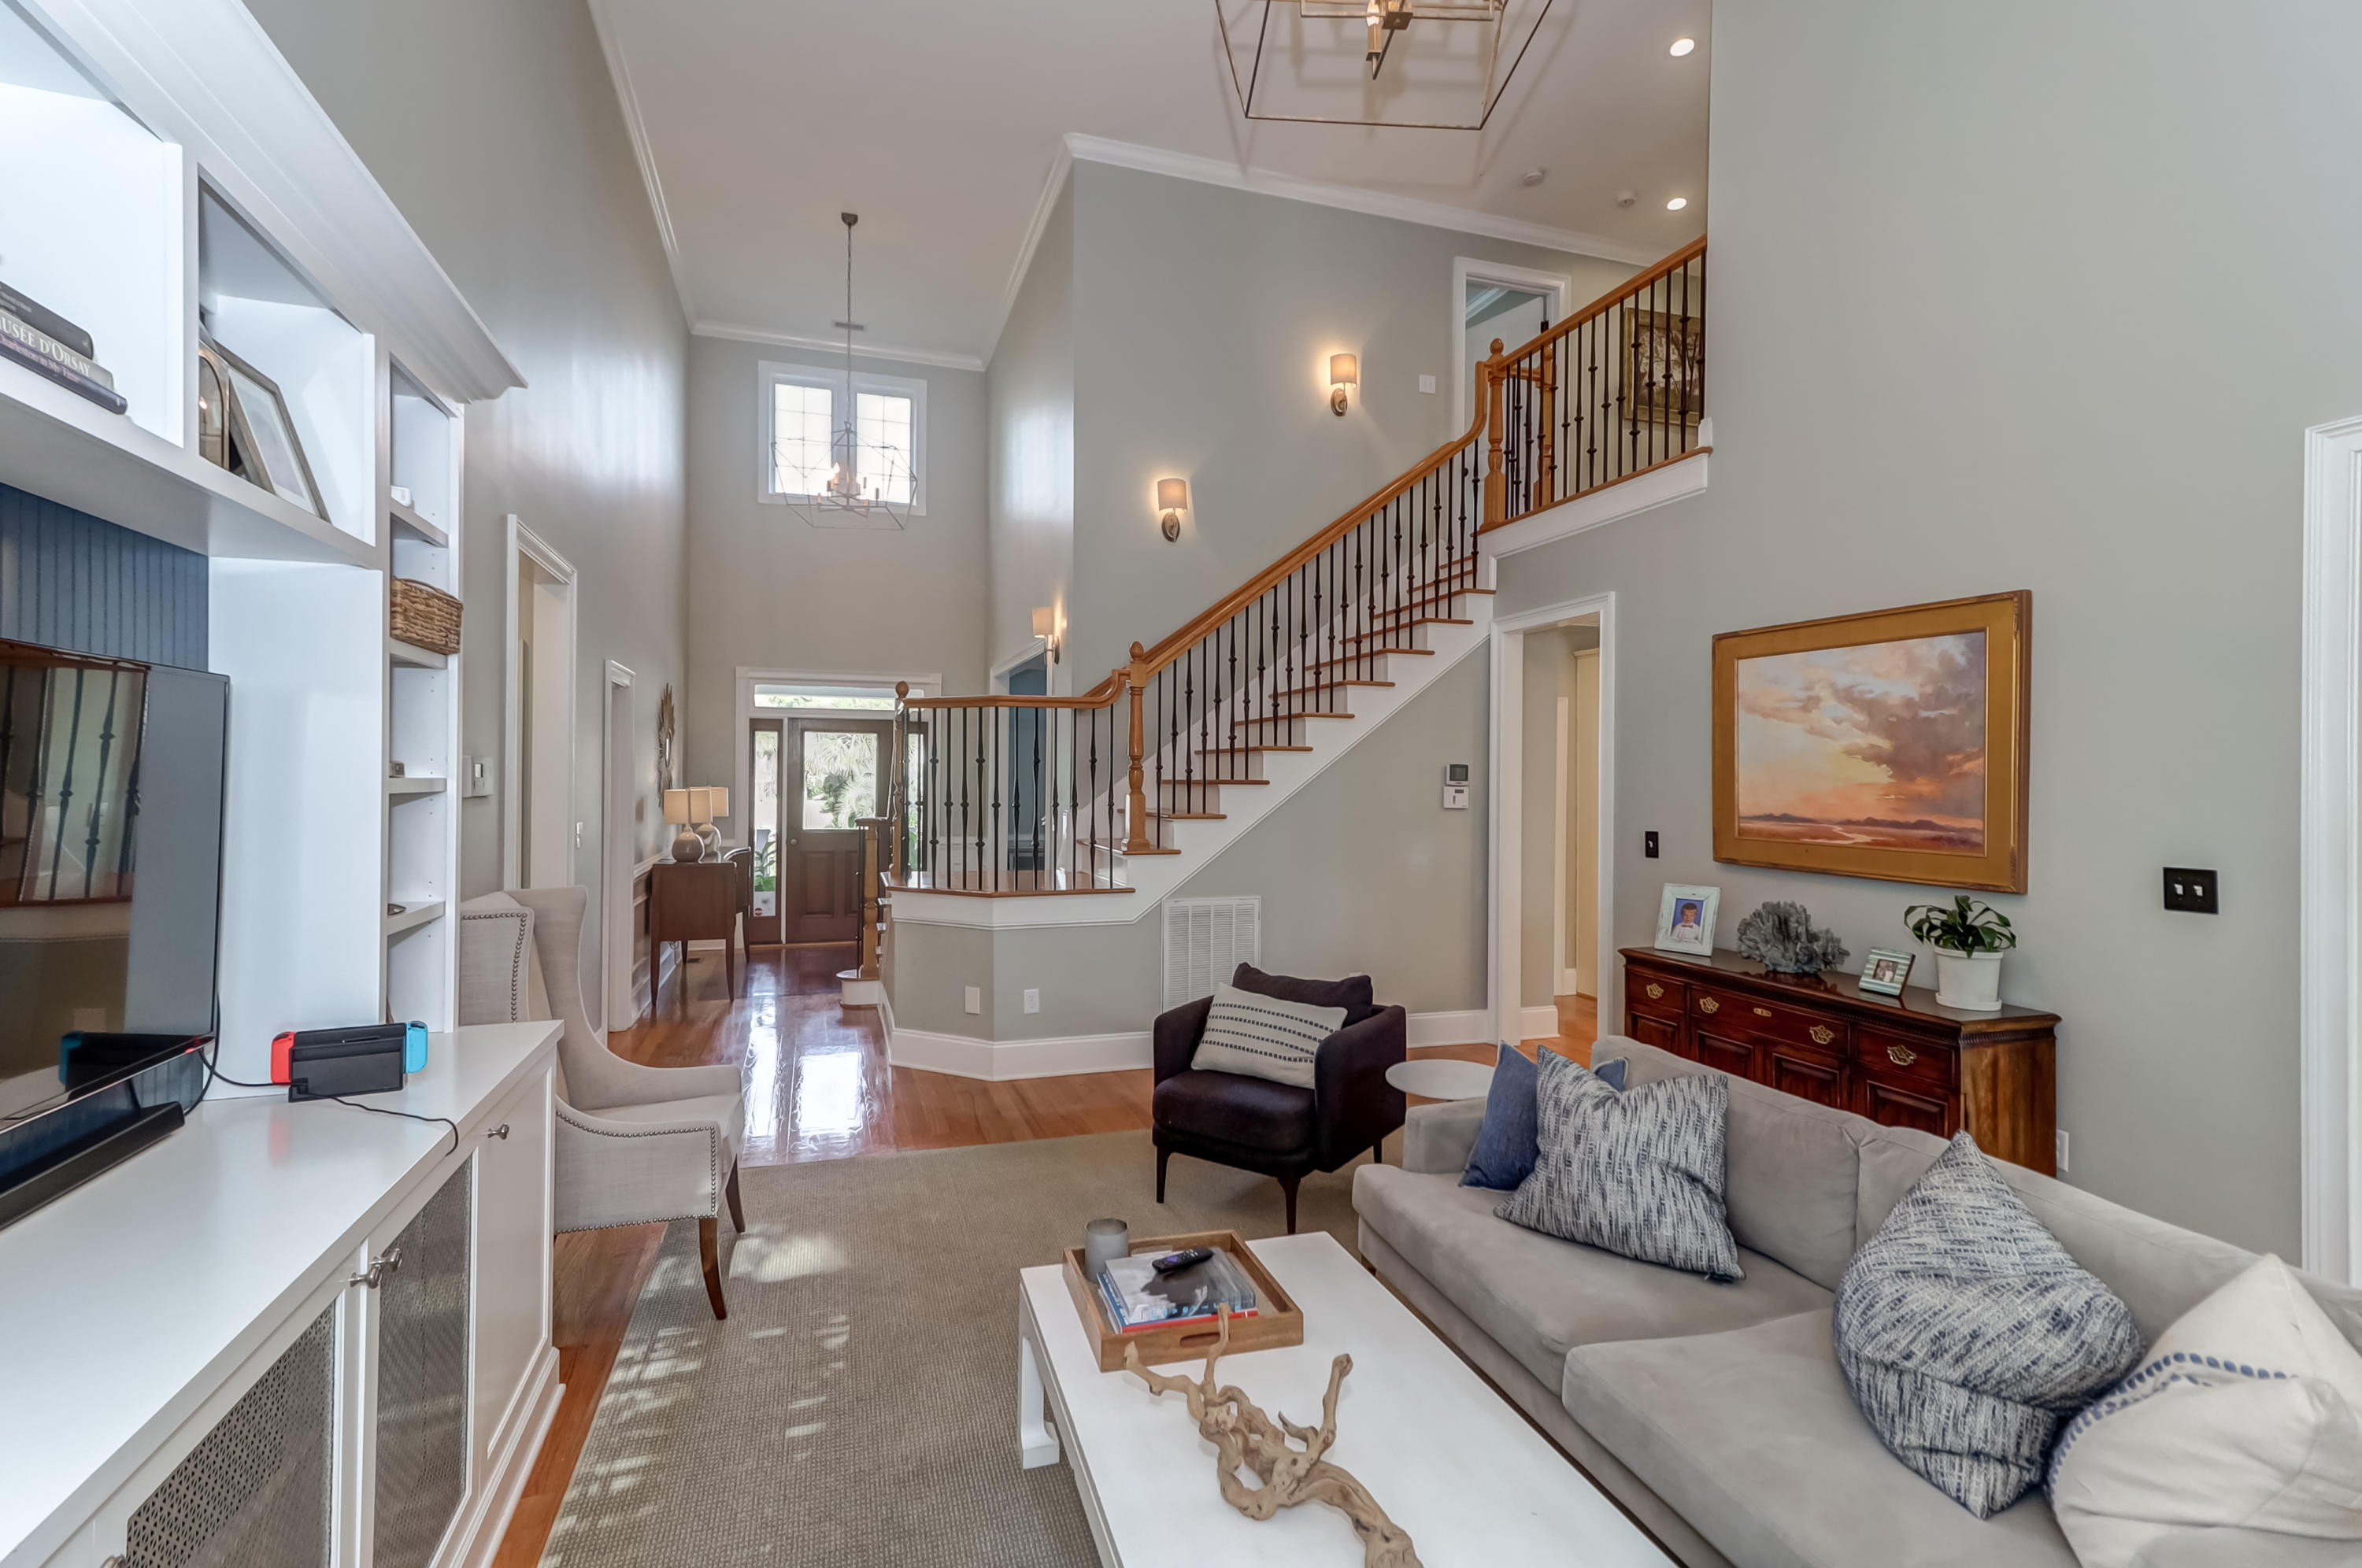 Woodward Pointe Homes For Sale - 657 White Chapel, Charleston, SC - 48